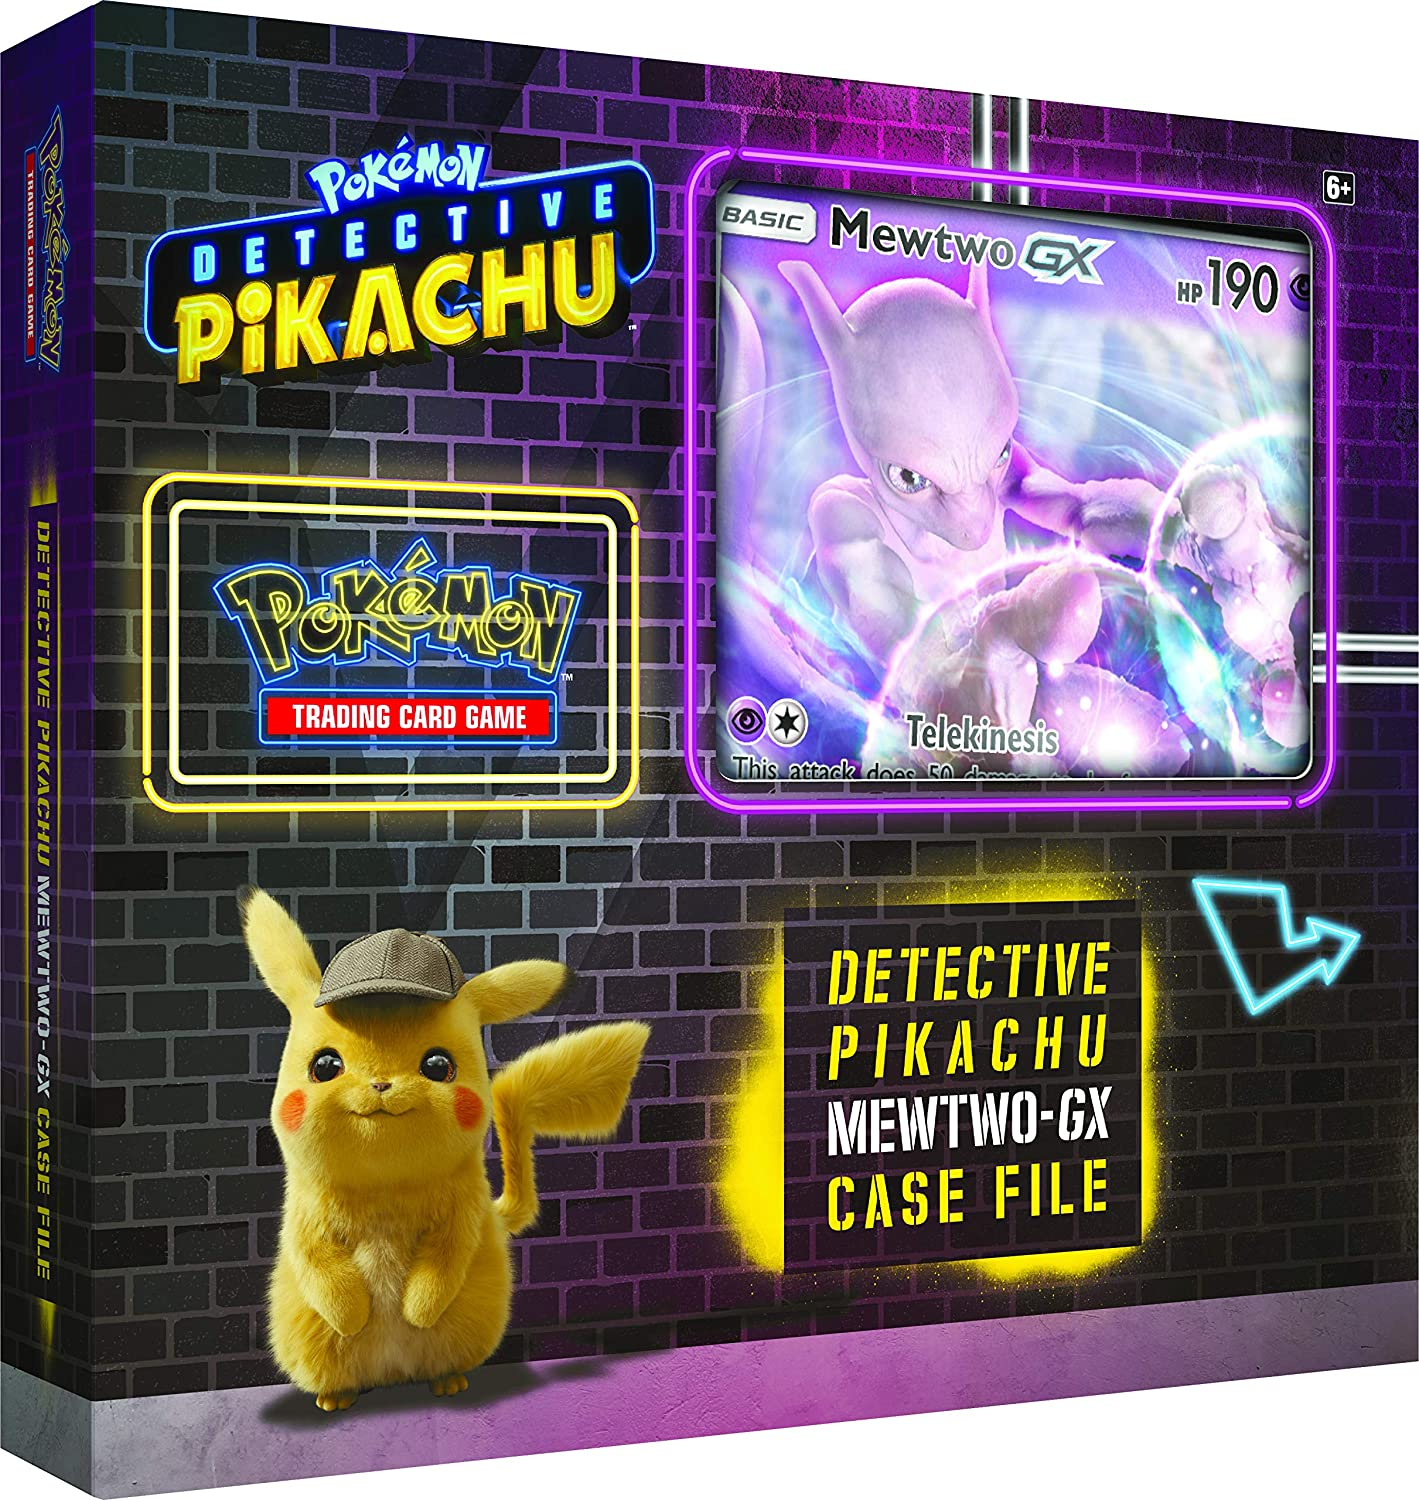 Pokemon TCG: Detective Pikachu Mewtwo-Gx Case File + 6 Booster Pack + A Foil Promo Gx Card + A Oversize Gx Foil Card